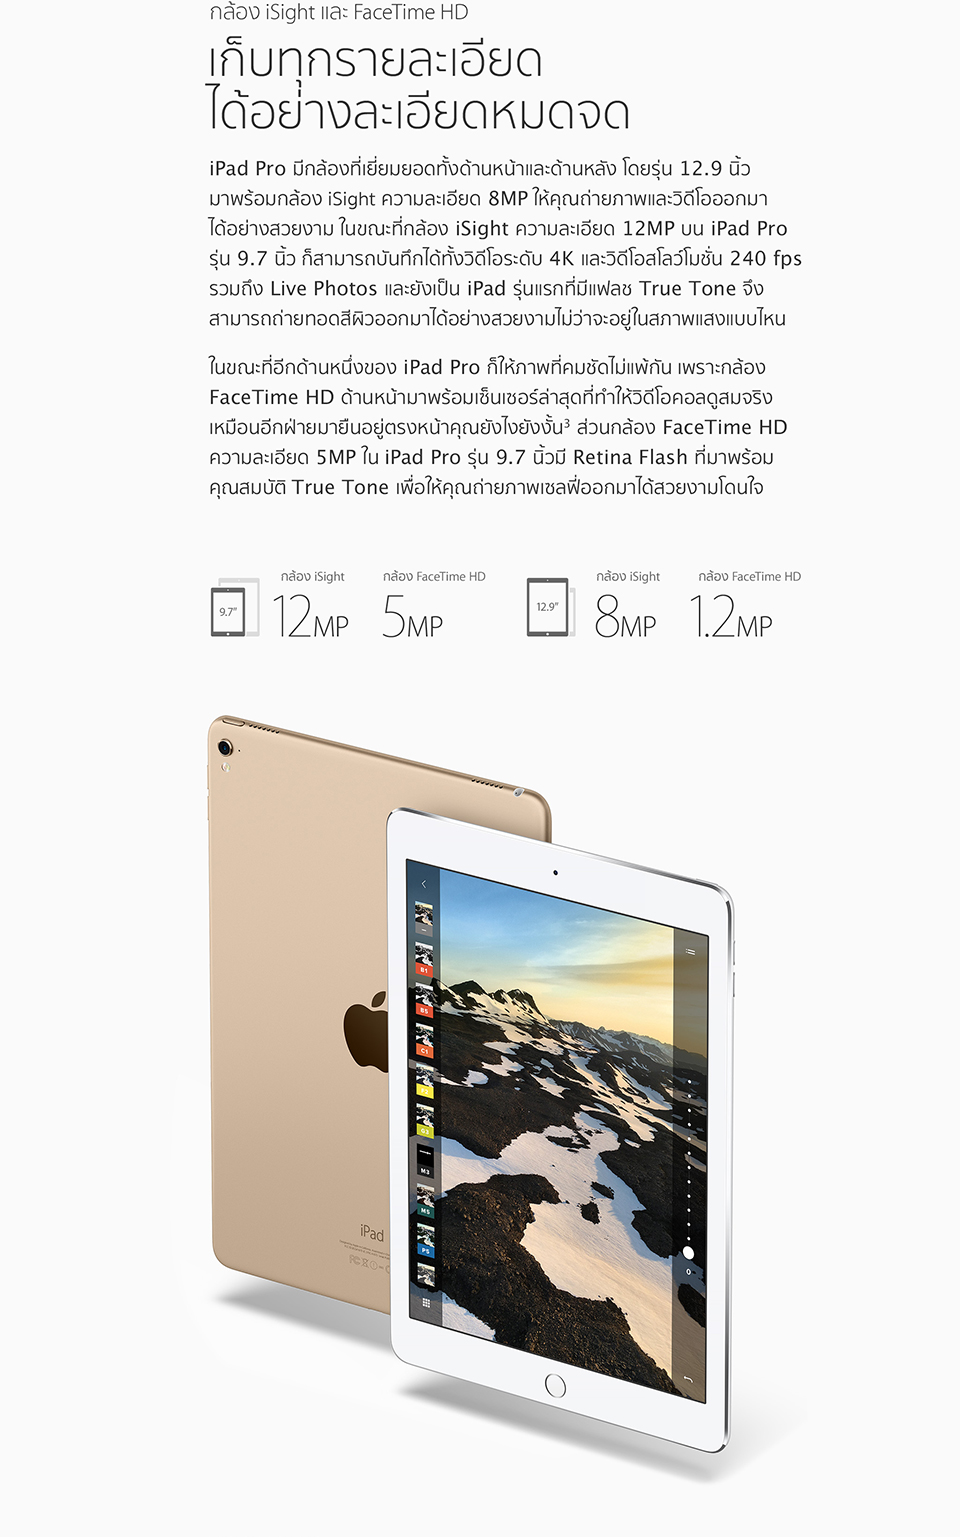 how to use internet on ipad air